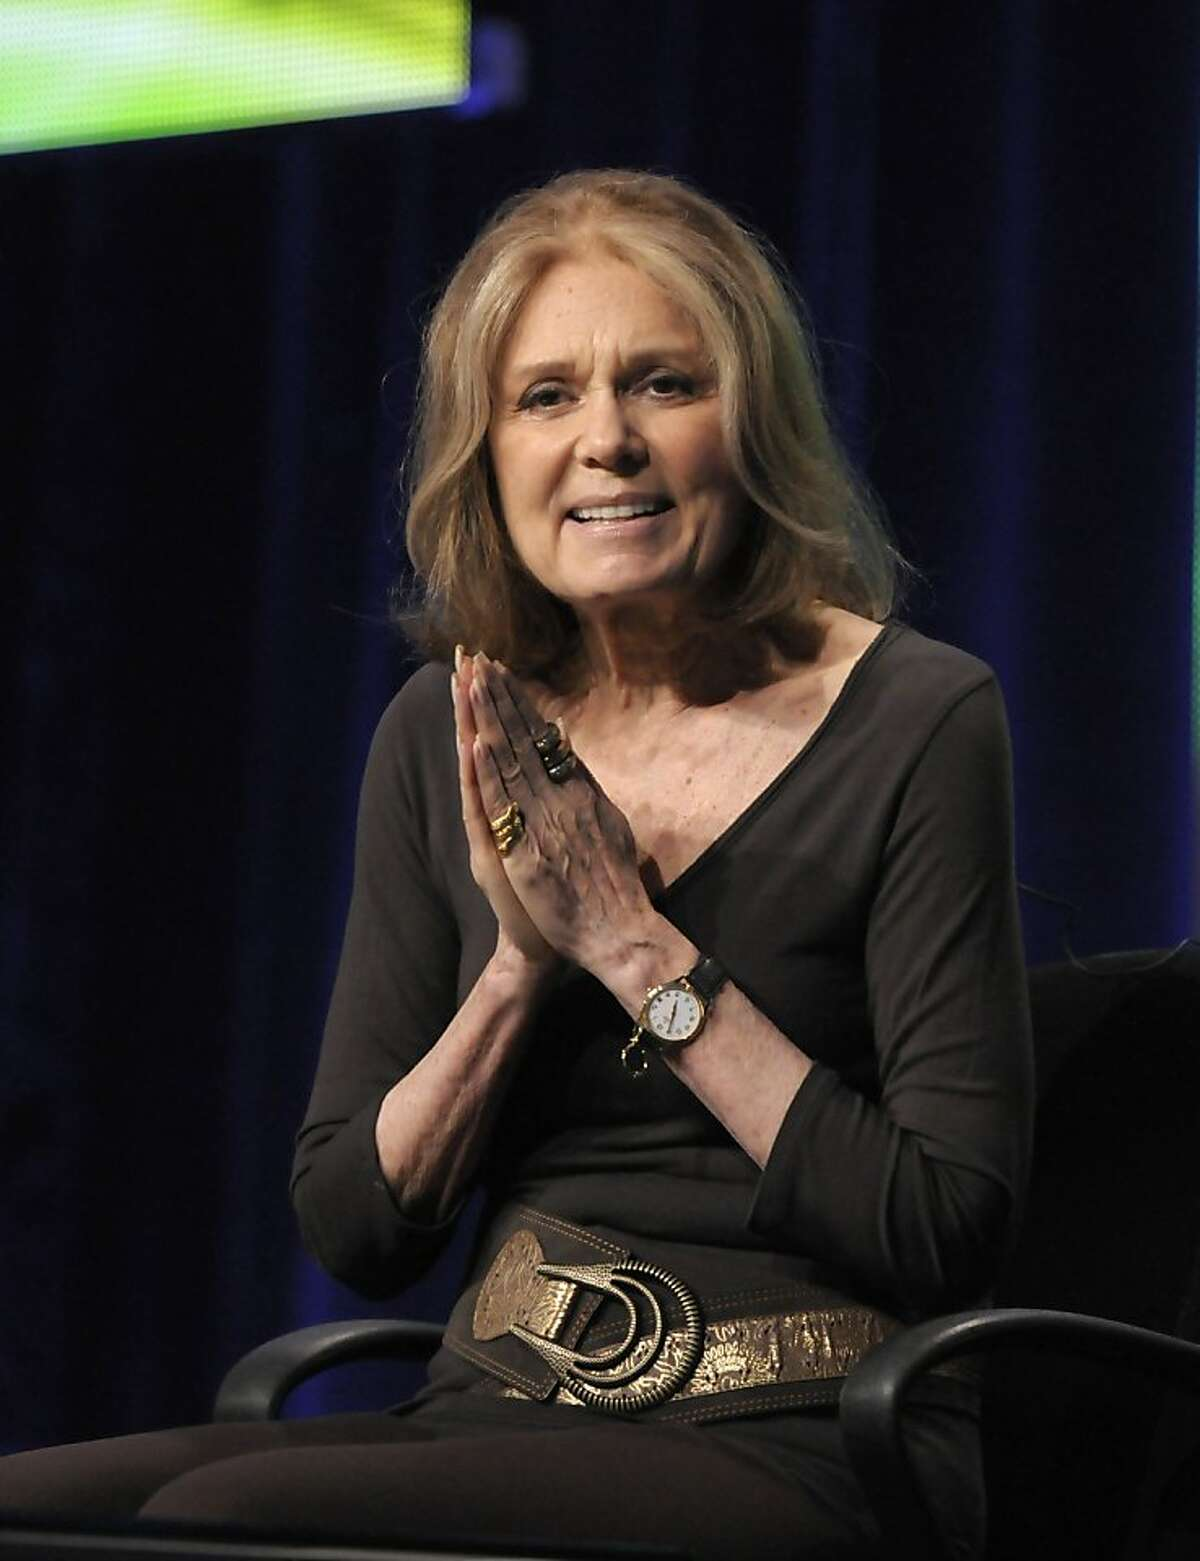 """Activist Gloria Steinem speaks during The Television Critics Association 2011 Summer Press Tour in Beverly Hills, Calif. on Thursday, July 28, 2011. Steinem is profiled in the upcoming documentary """"In Her Own Words"""" on HBO. (AP Photo/Dan Steinberg) Ran on: 08-13-2011 The documentary Gloria depicts the life of celebrated feminist Gloria Steinem. Ran on: 08-15-2011 Gloria Steinem is the subject of an HBO documentary Gloria: In Her Own Words."""